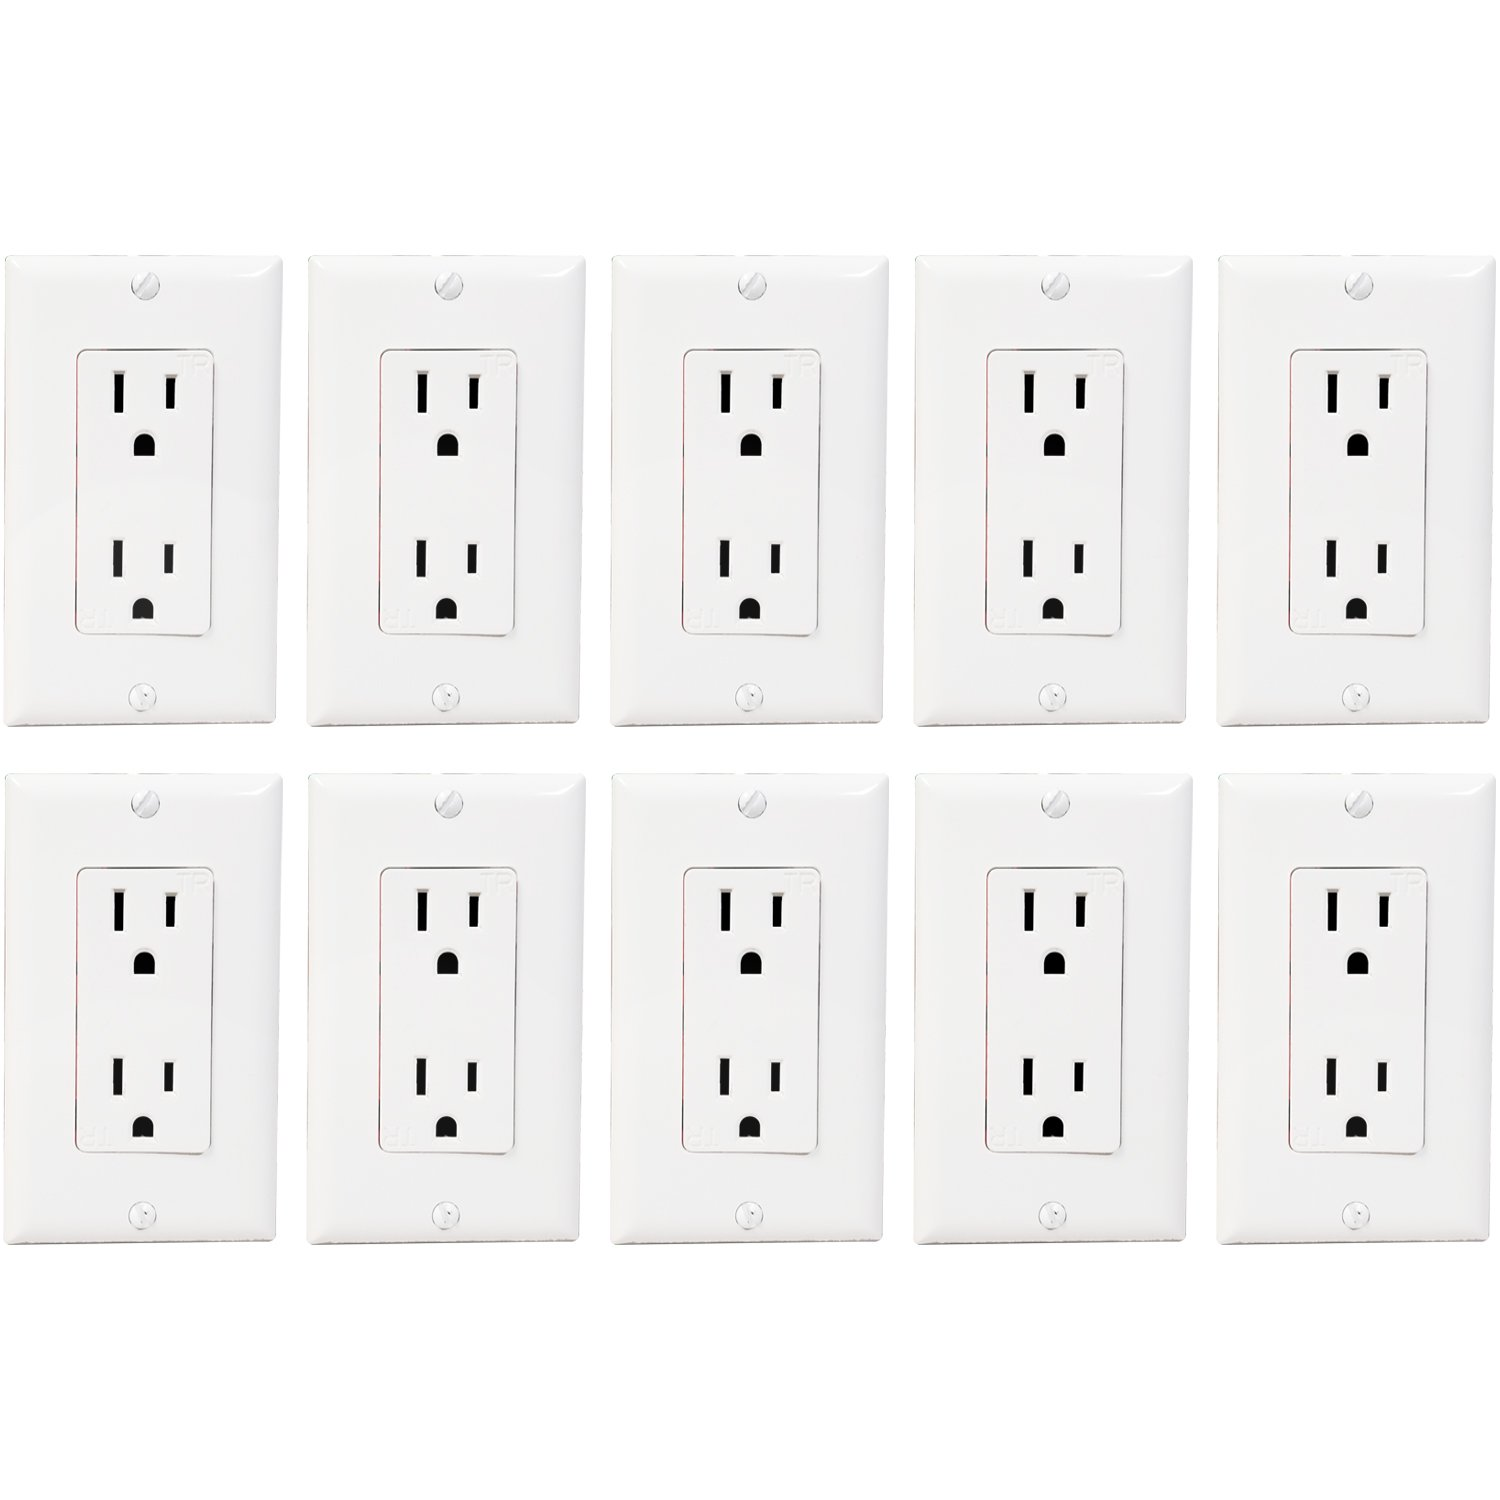 Enerlites 15A Decorator Outlet with Covers, 61501-WWP | Electrical, Residential and Commercial Grade, Tamper-Resistant, Duplex Receptacle, Self-Grounding, 2-Pole, UL Listed | 15A 125V 1800W - 10 Pack